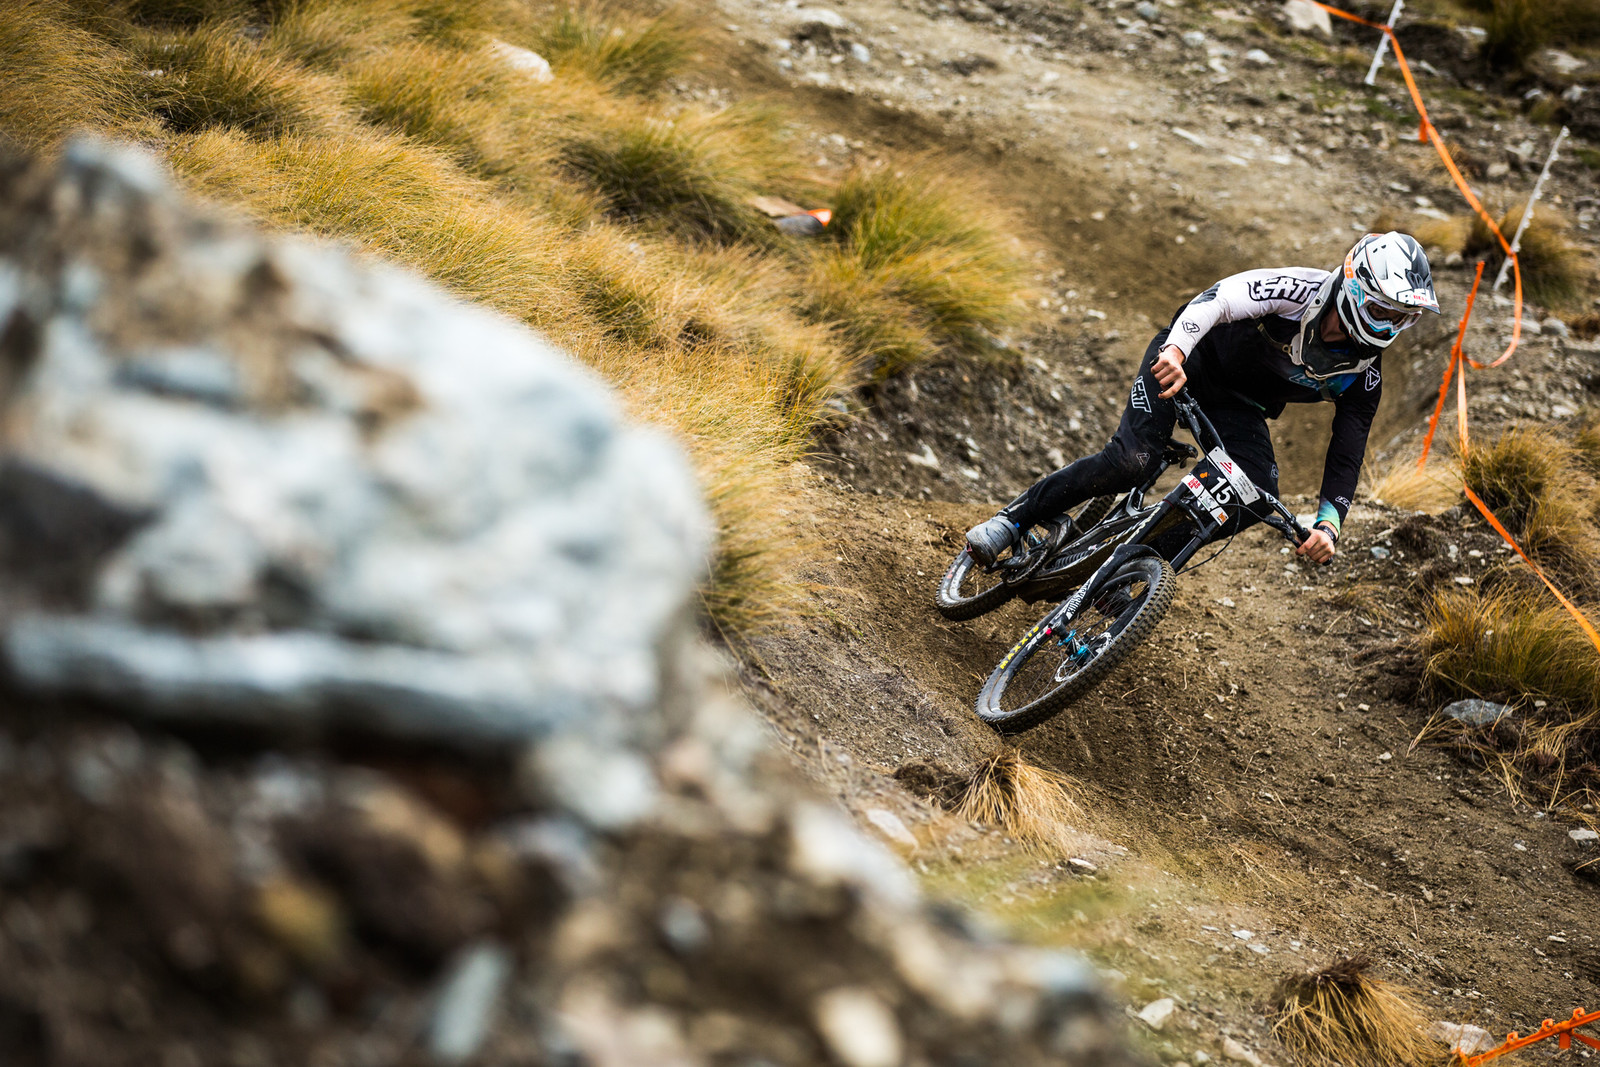 Simon Read - Blenki, Brook & More - 2018 NZ National Champs Day 1 - Mountain Biking Pictures - Vital MTB